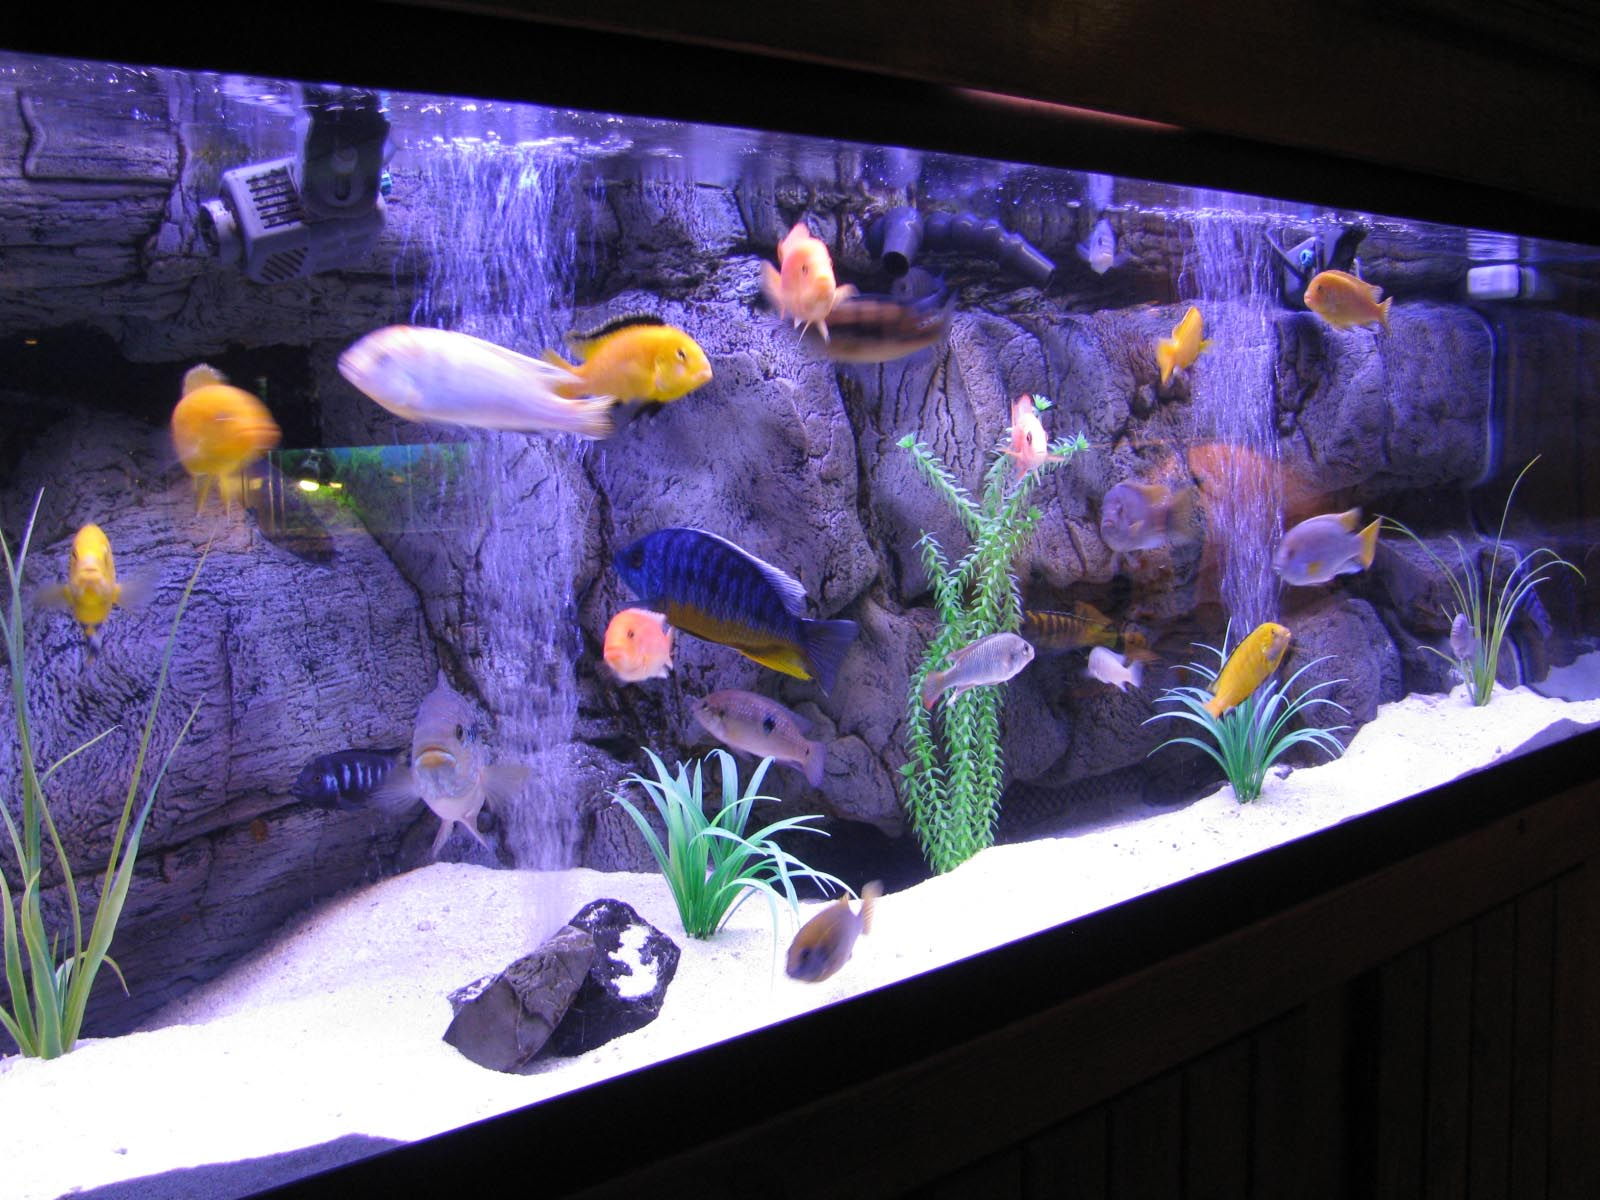 Large Freshwater Fish For Aquarium | Aquarium Design Ideas